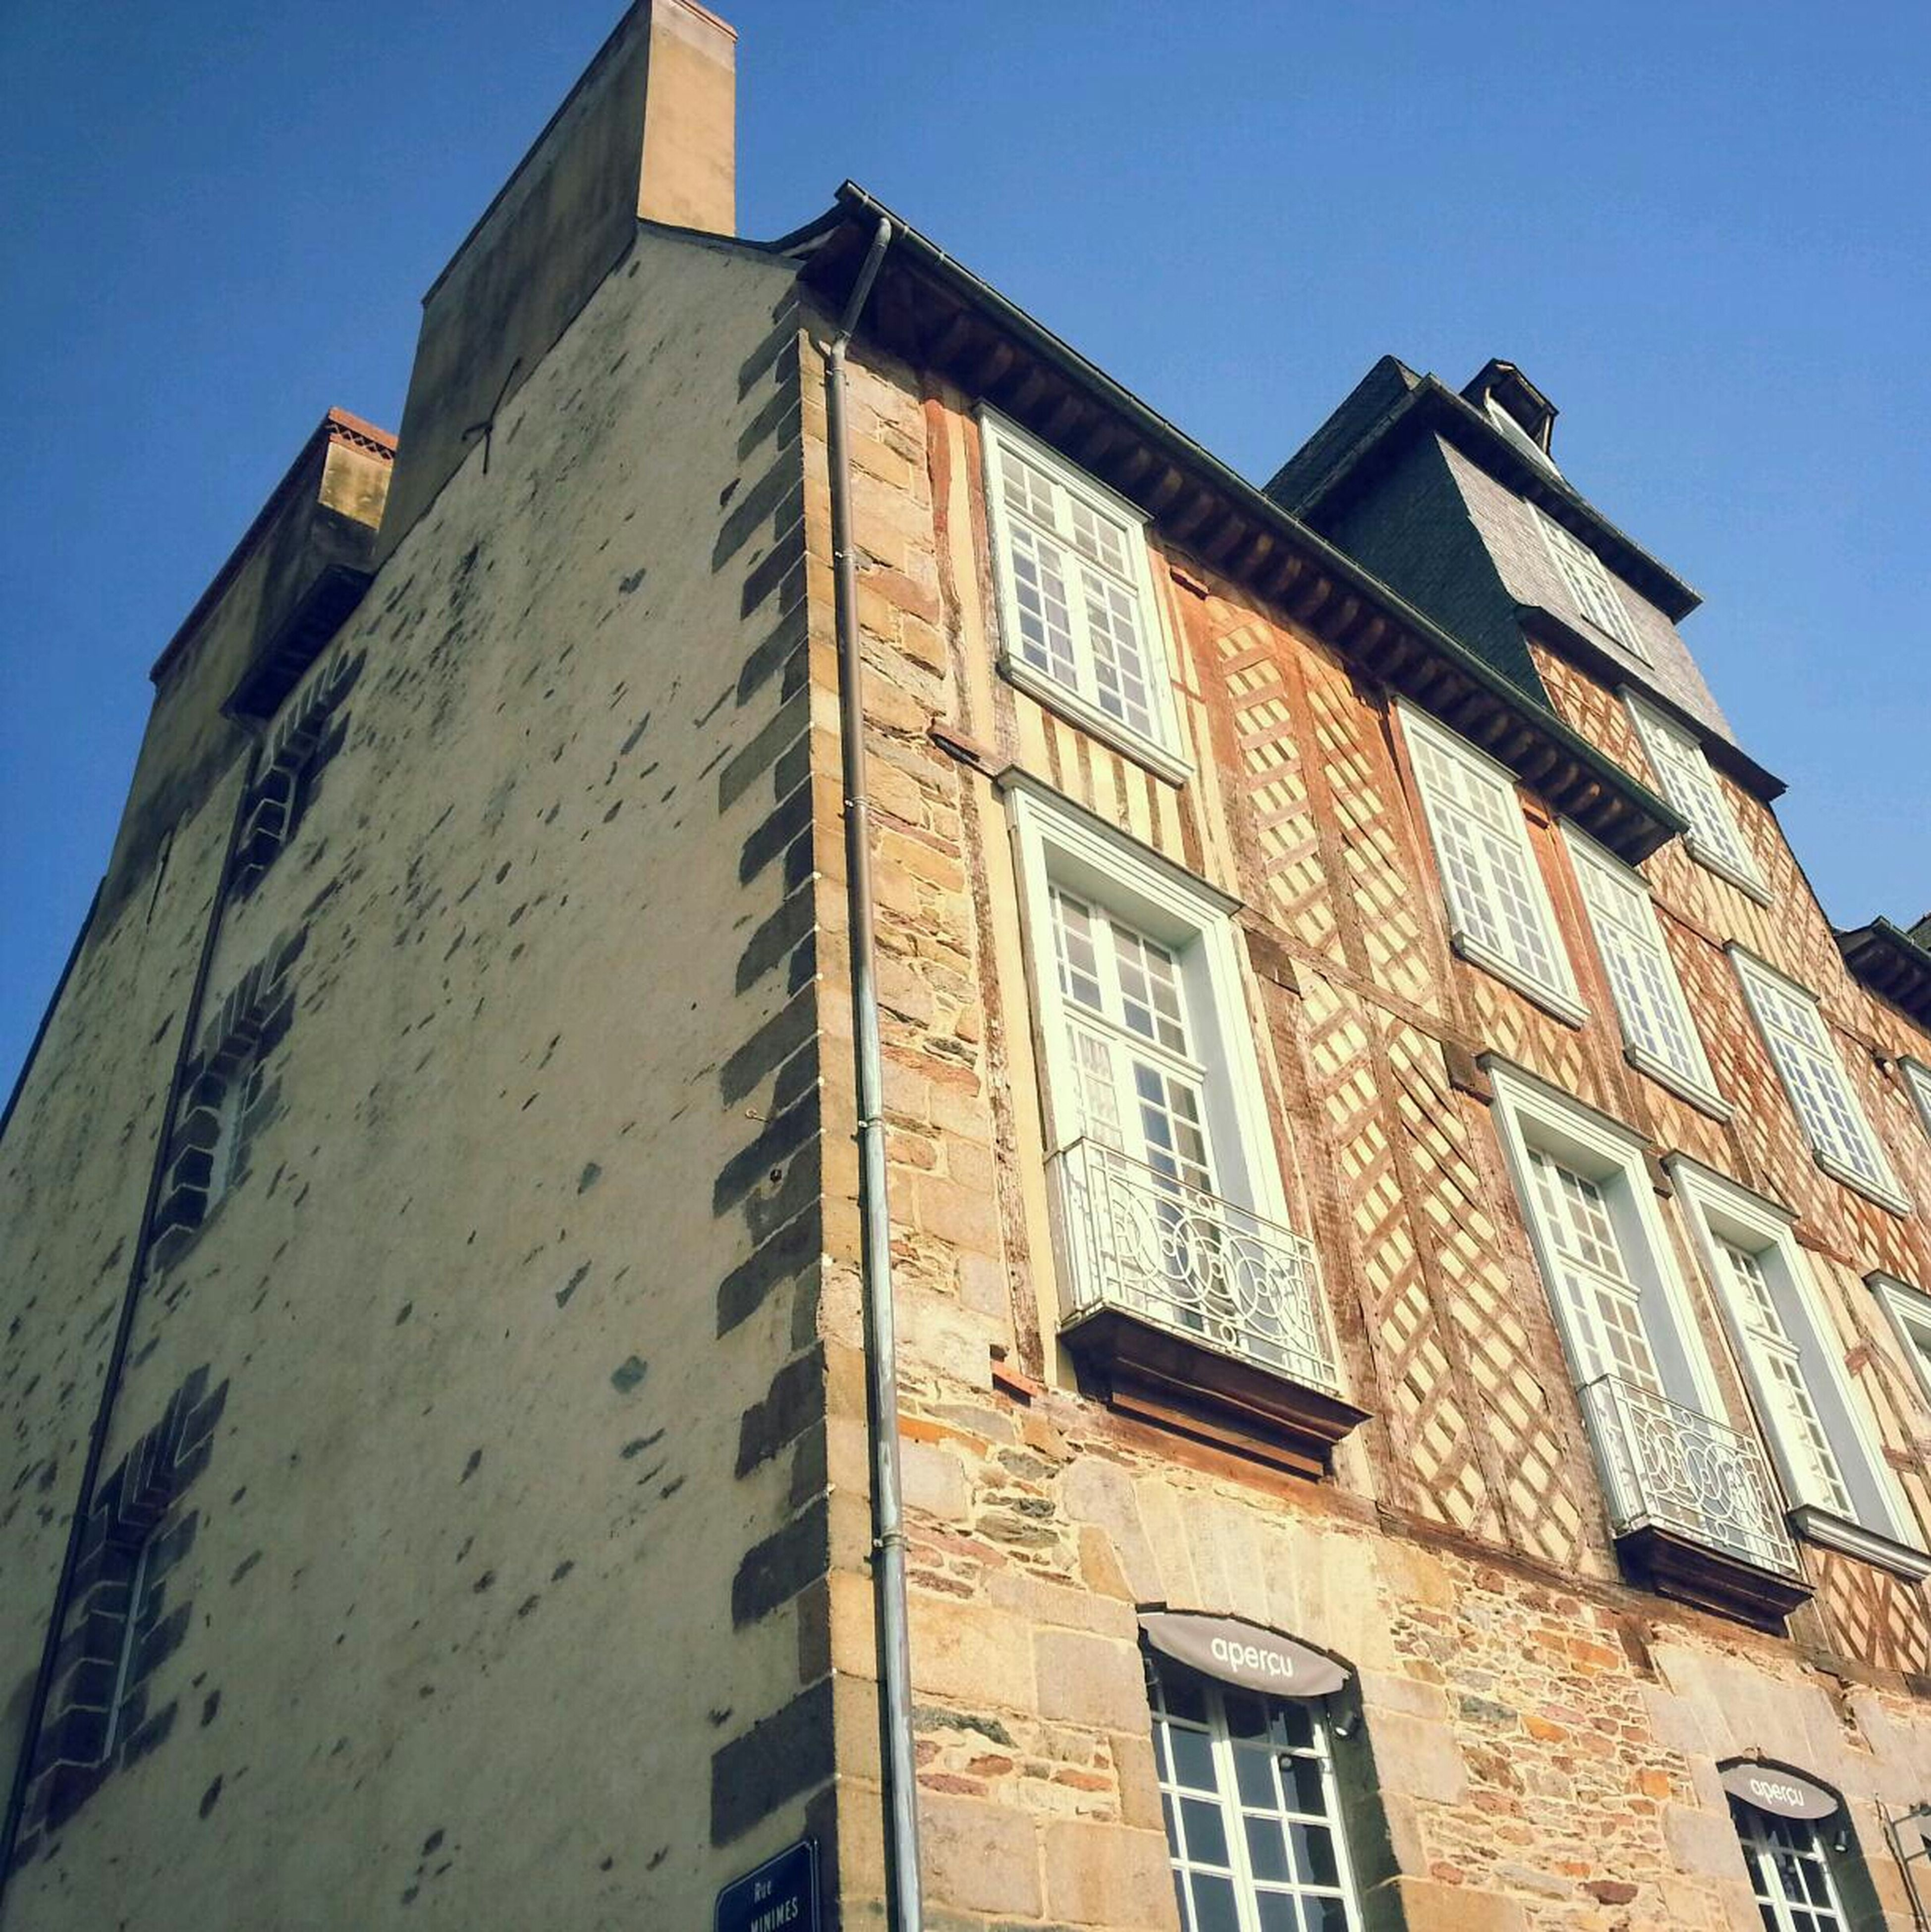 building exterior, architecture, built structure, low angle view, window, residential structure, residential building, blue, clear sky, building, house, sky, day, outdoors, sunlight, no people, old, city, apartment, brick wall